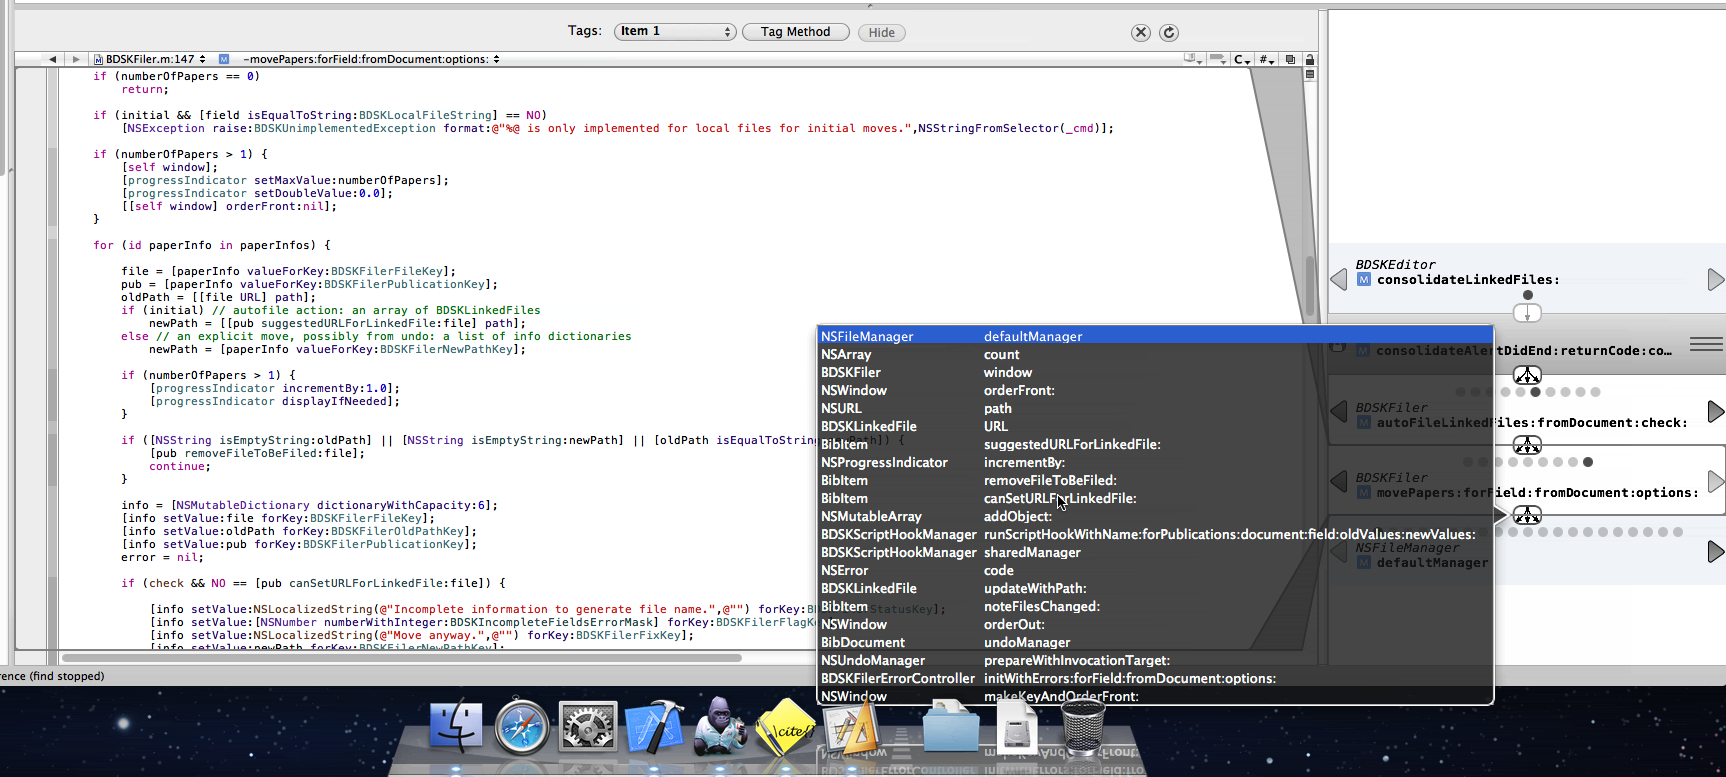 """A screenshot of Xcode 3 running on Snow Leopard with a split view showing the editor on the left and a custom plugin on the right. The plugin-view contains a stack of methods with the currently displayed method in the editor highlighted in the plugin view with a darker metallic background. All methods preceding and succeeding the current method in the stack have arrows on the left and right indicating that they can be exchanged for other callee/caller methods and each stack-level has a page indicator showing how many methods there are on this level. The different """"frames"""" of the stack are connected by little buttons with an icon showing showing on arrow branching of into three. In addition, a popover HUD-like view is shown pointing to one of the buttons connecting two frames. The popover shows a list of all methods called by the originating method and thus allowing a quick-selection of a method without stepping through them via the arrow buttons."""